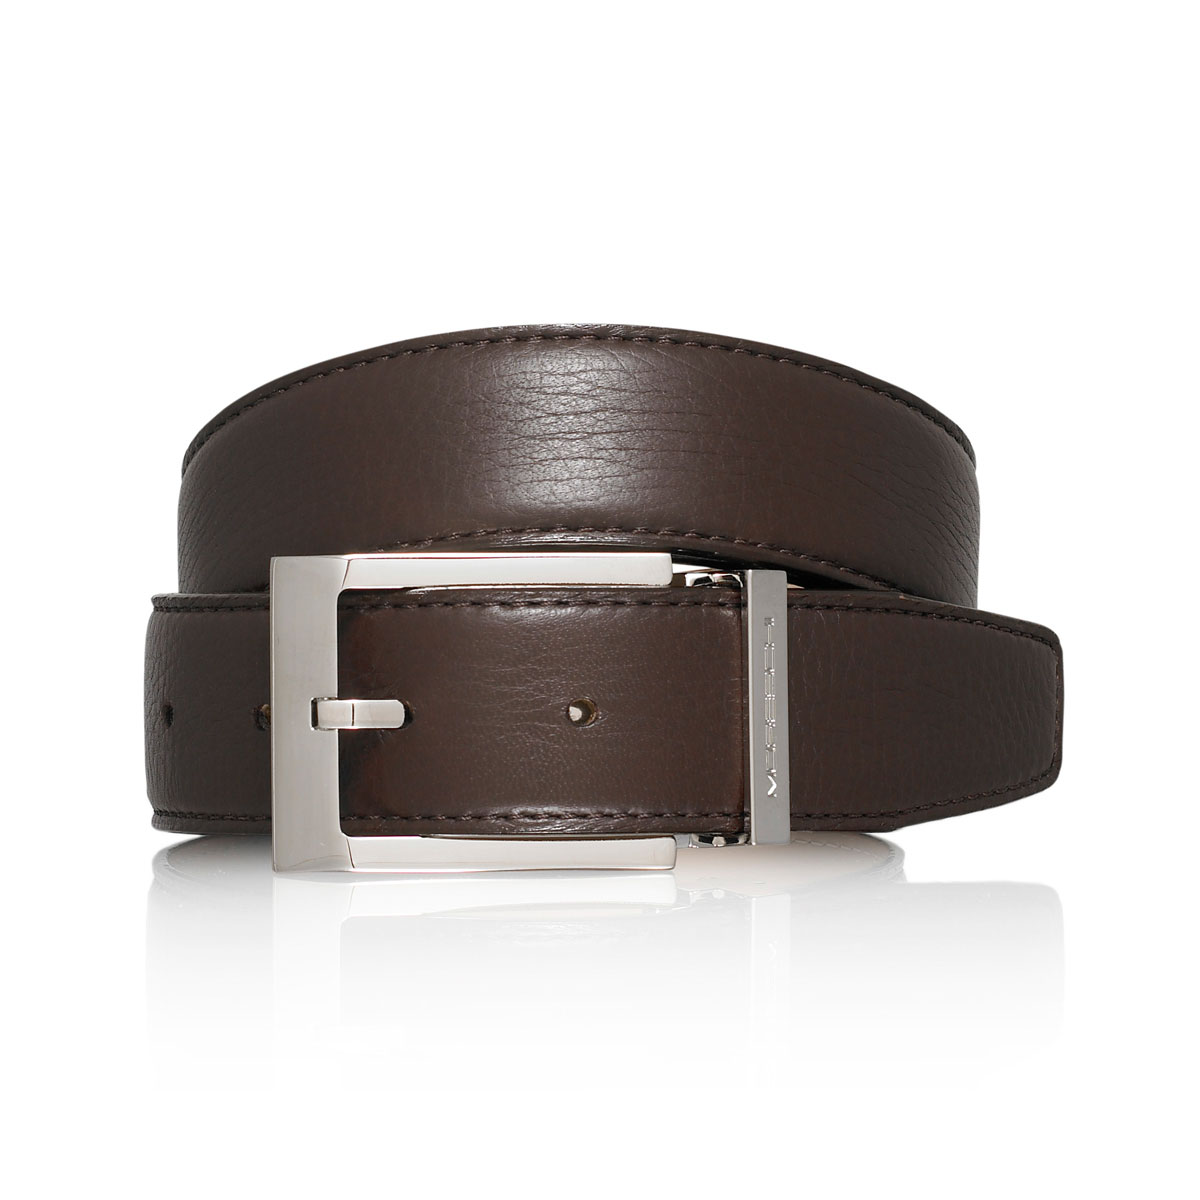 Russell And Bromley BUGATTI Metal Keeper Belt